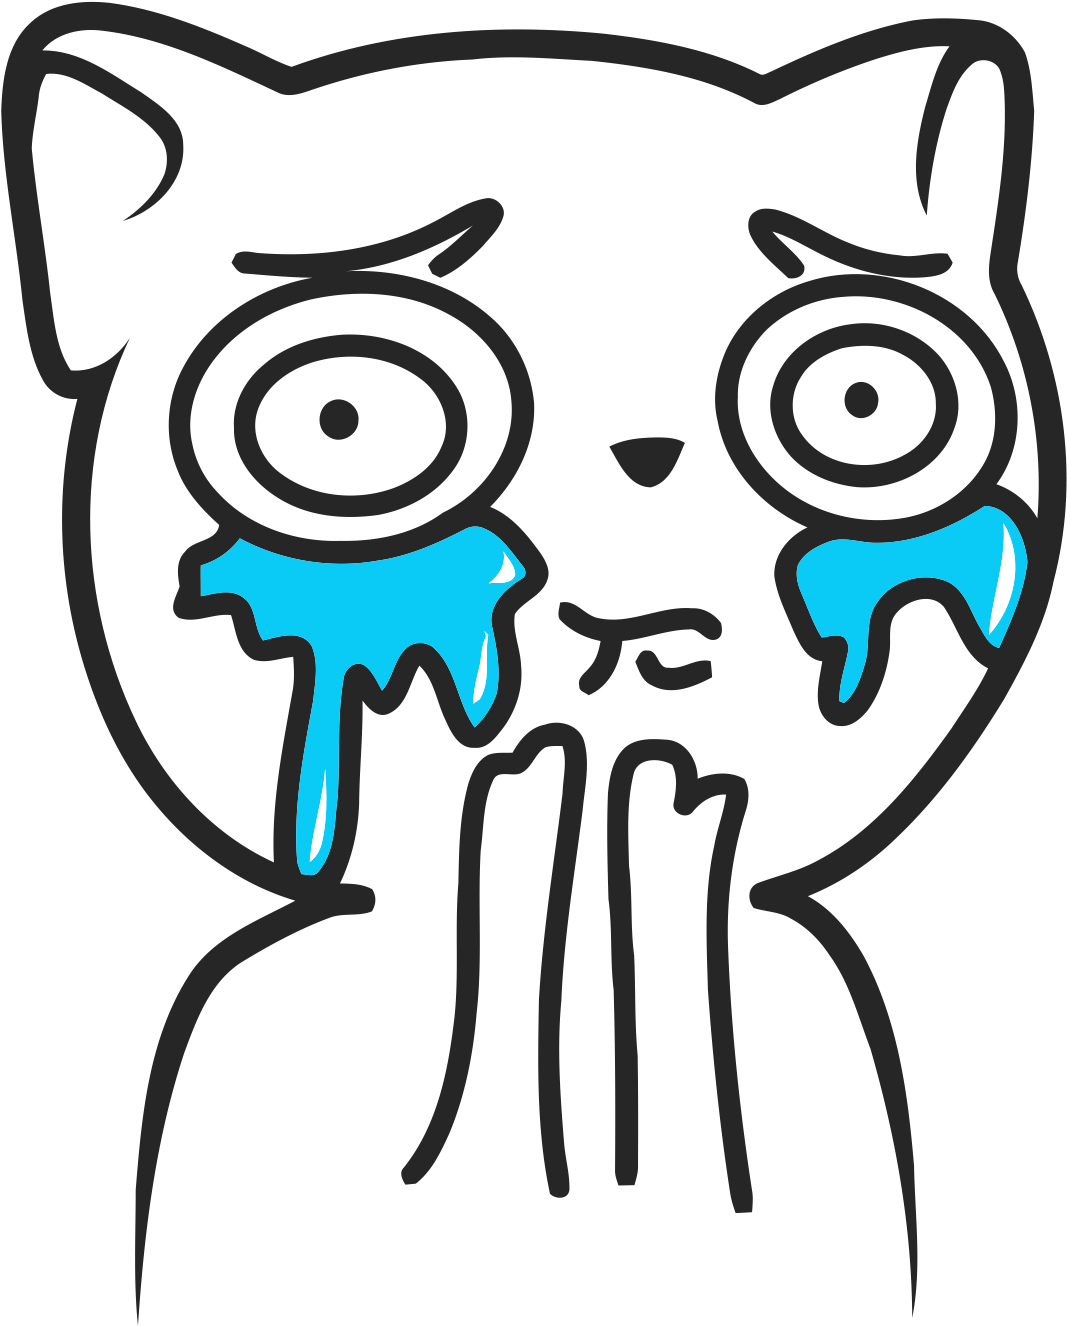 Download Crying Meme Face Png | PNG & GIF BASE